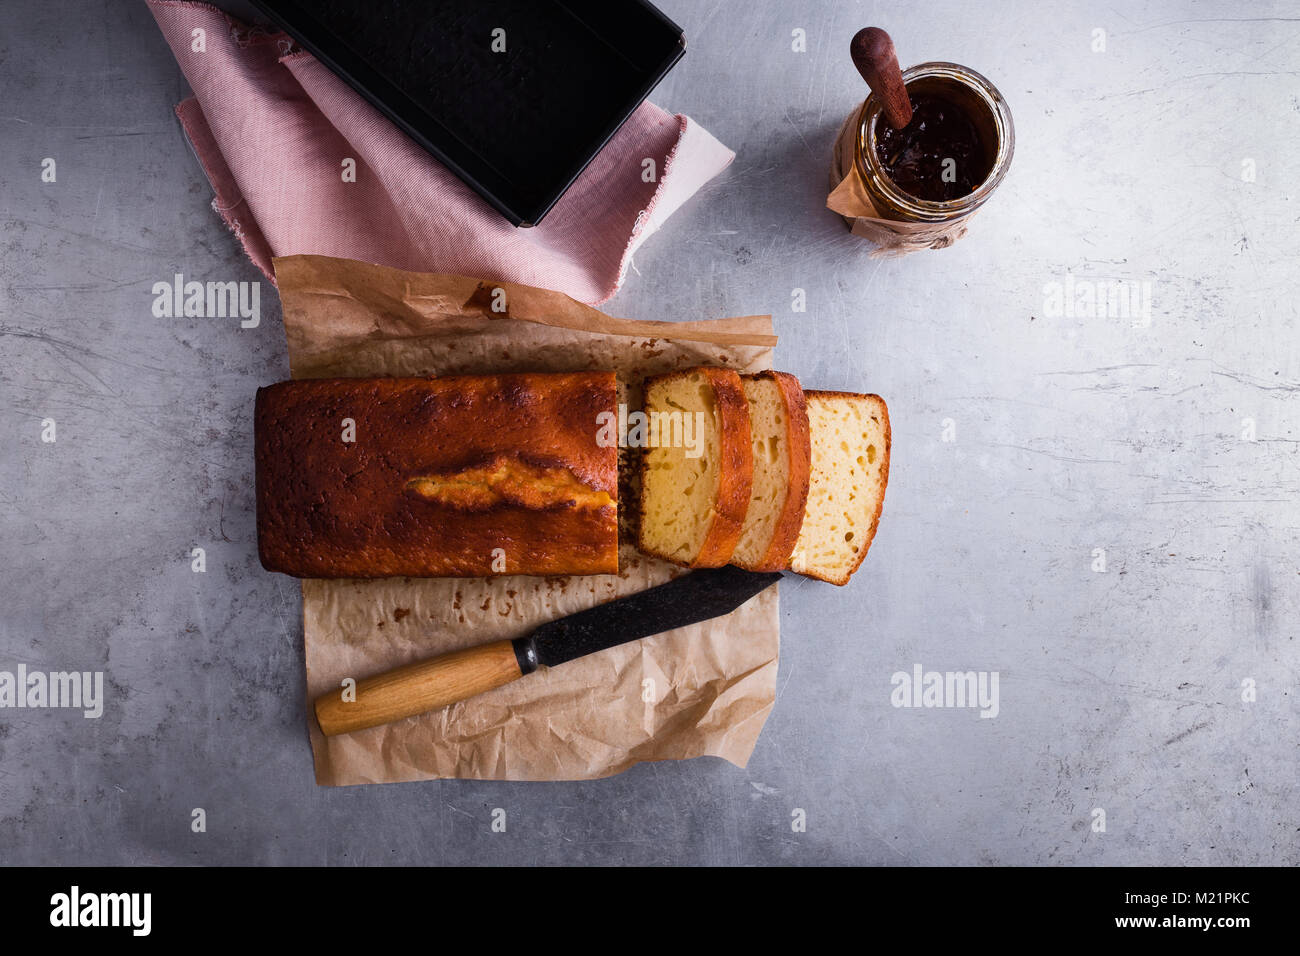 Homemade pound cake on baking paper served with fruit jam ready to eat, top view - Stock Image